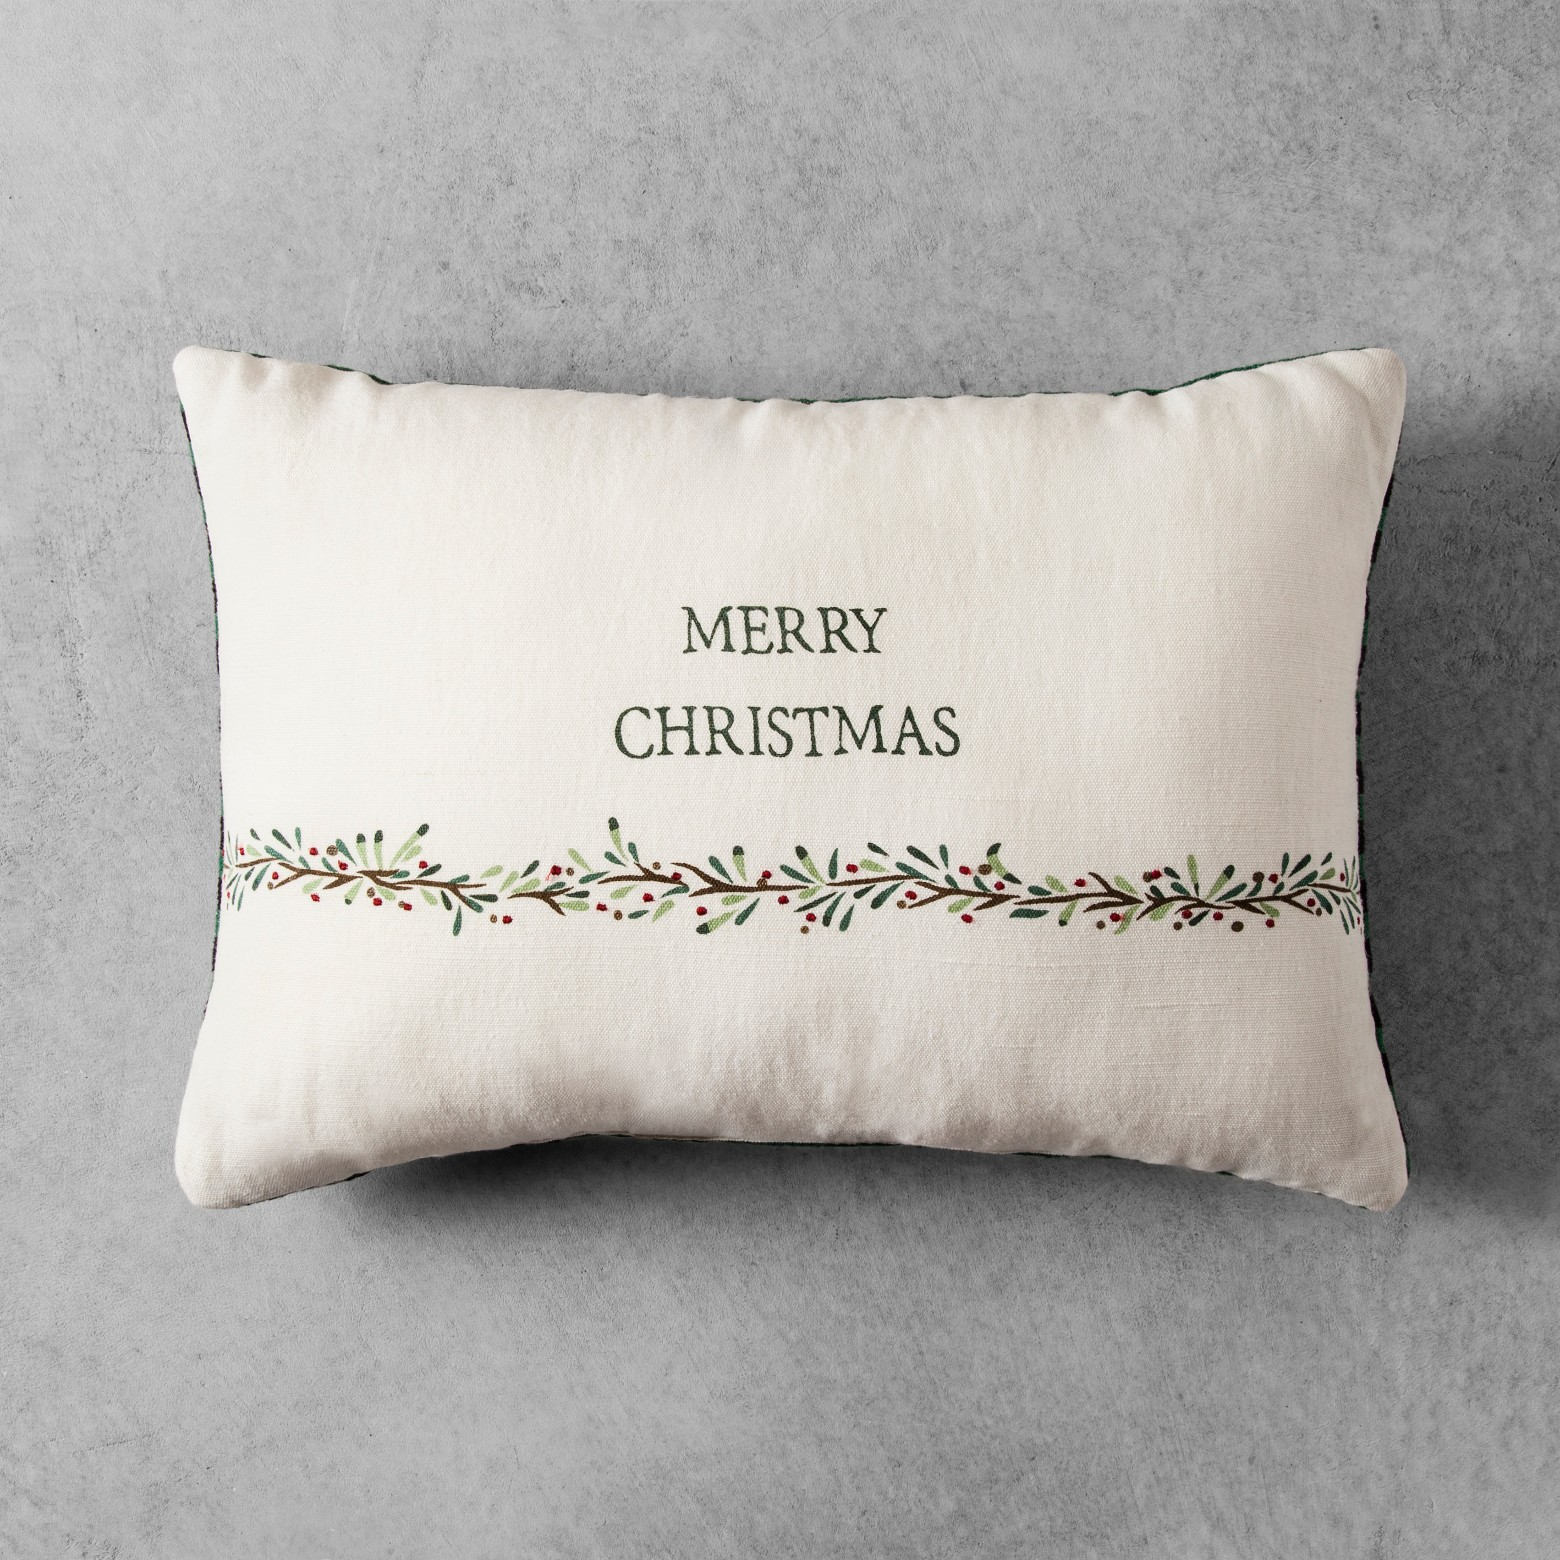 Home & Hearth Christmas Pillow